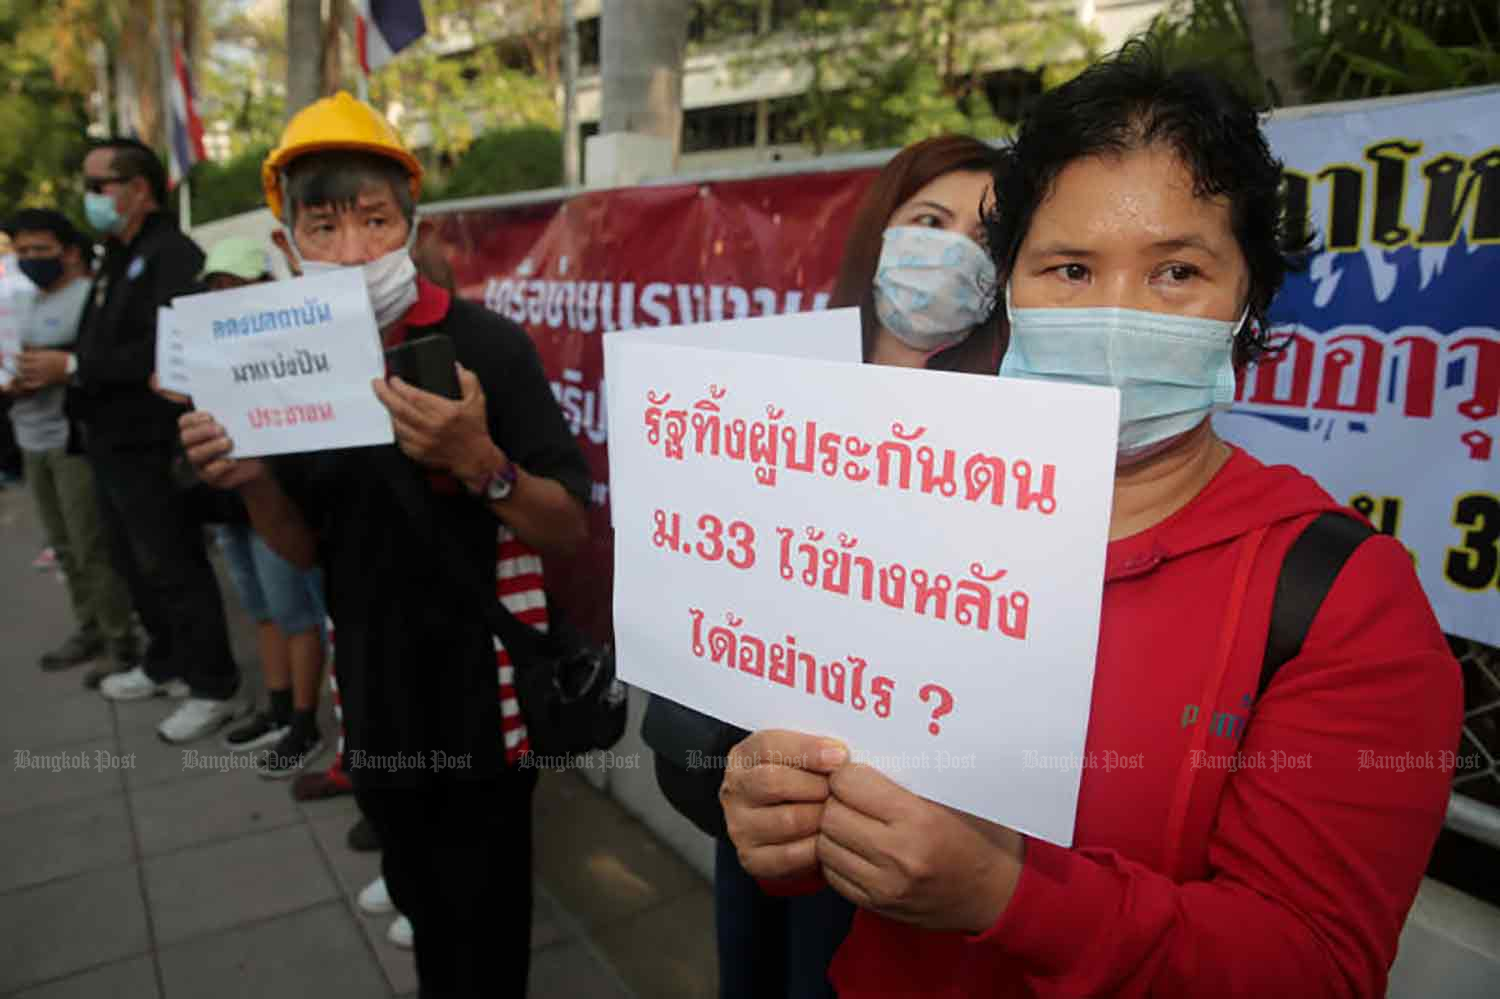 Labour activists gather at Government House in Bangkok on Tuesday to seek financial aid for workers in the Social Security system. (Photo by Chanat Katanyu)